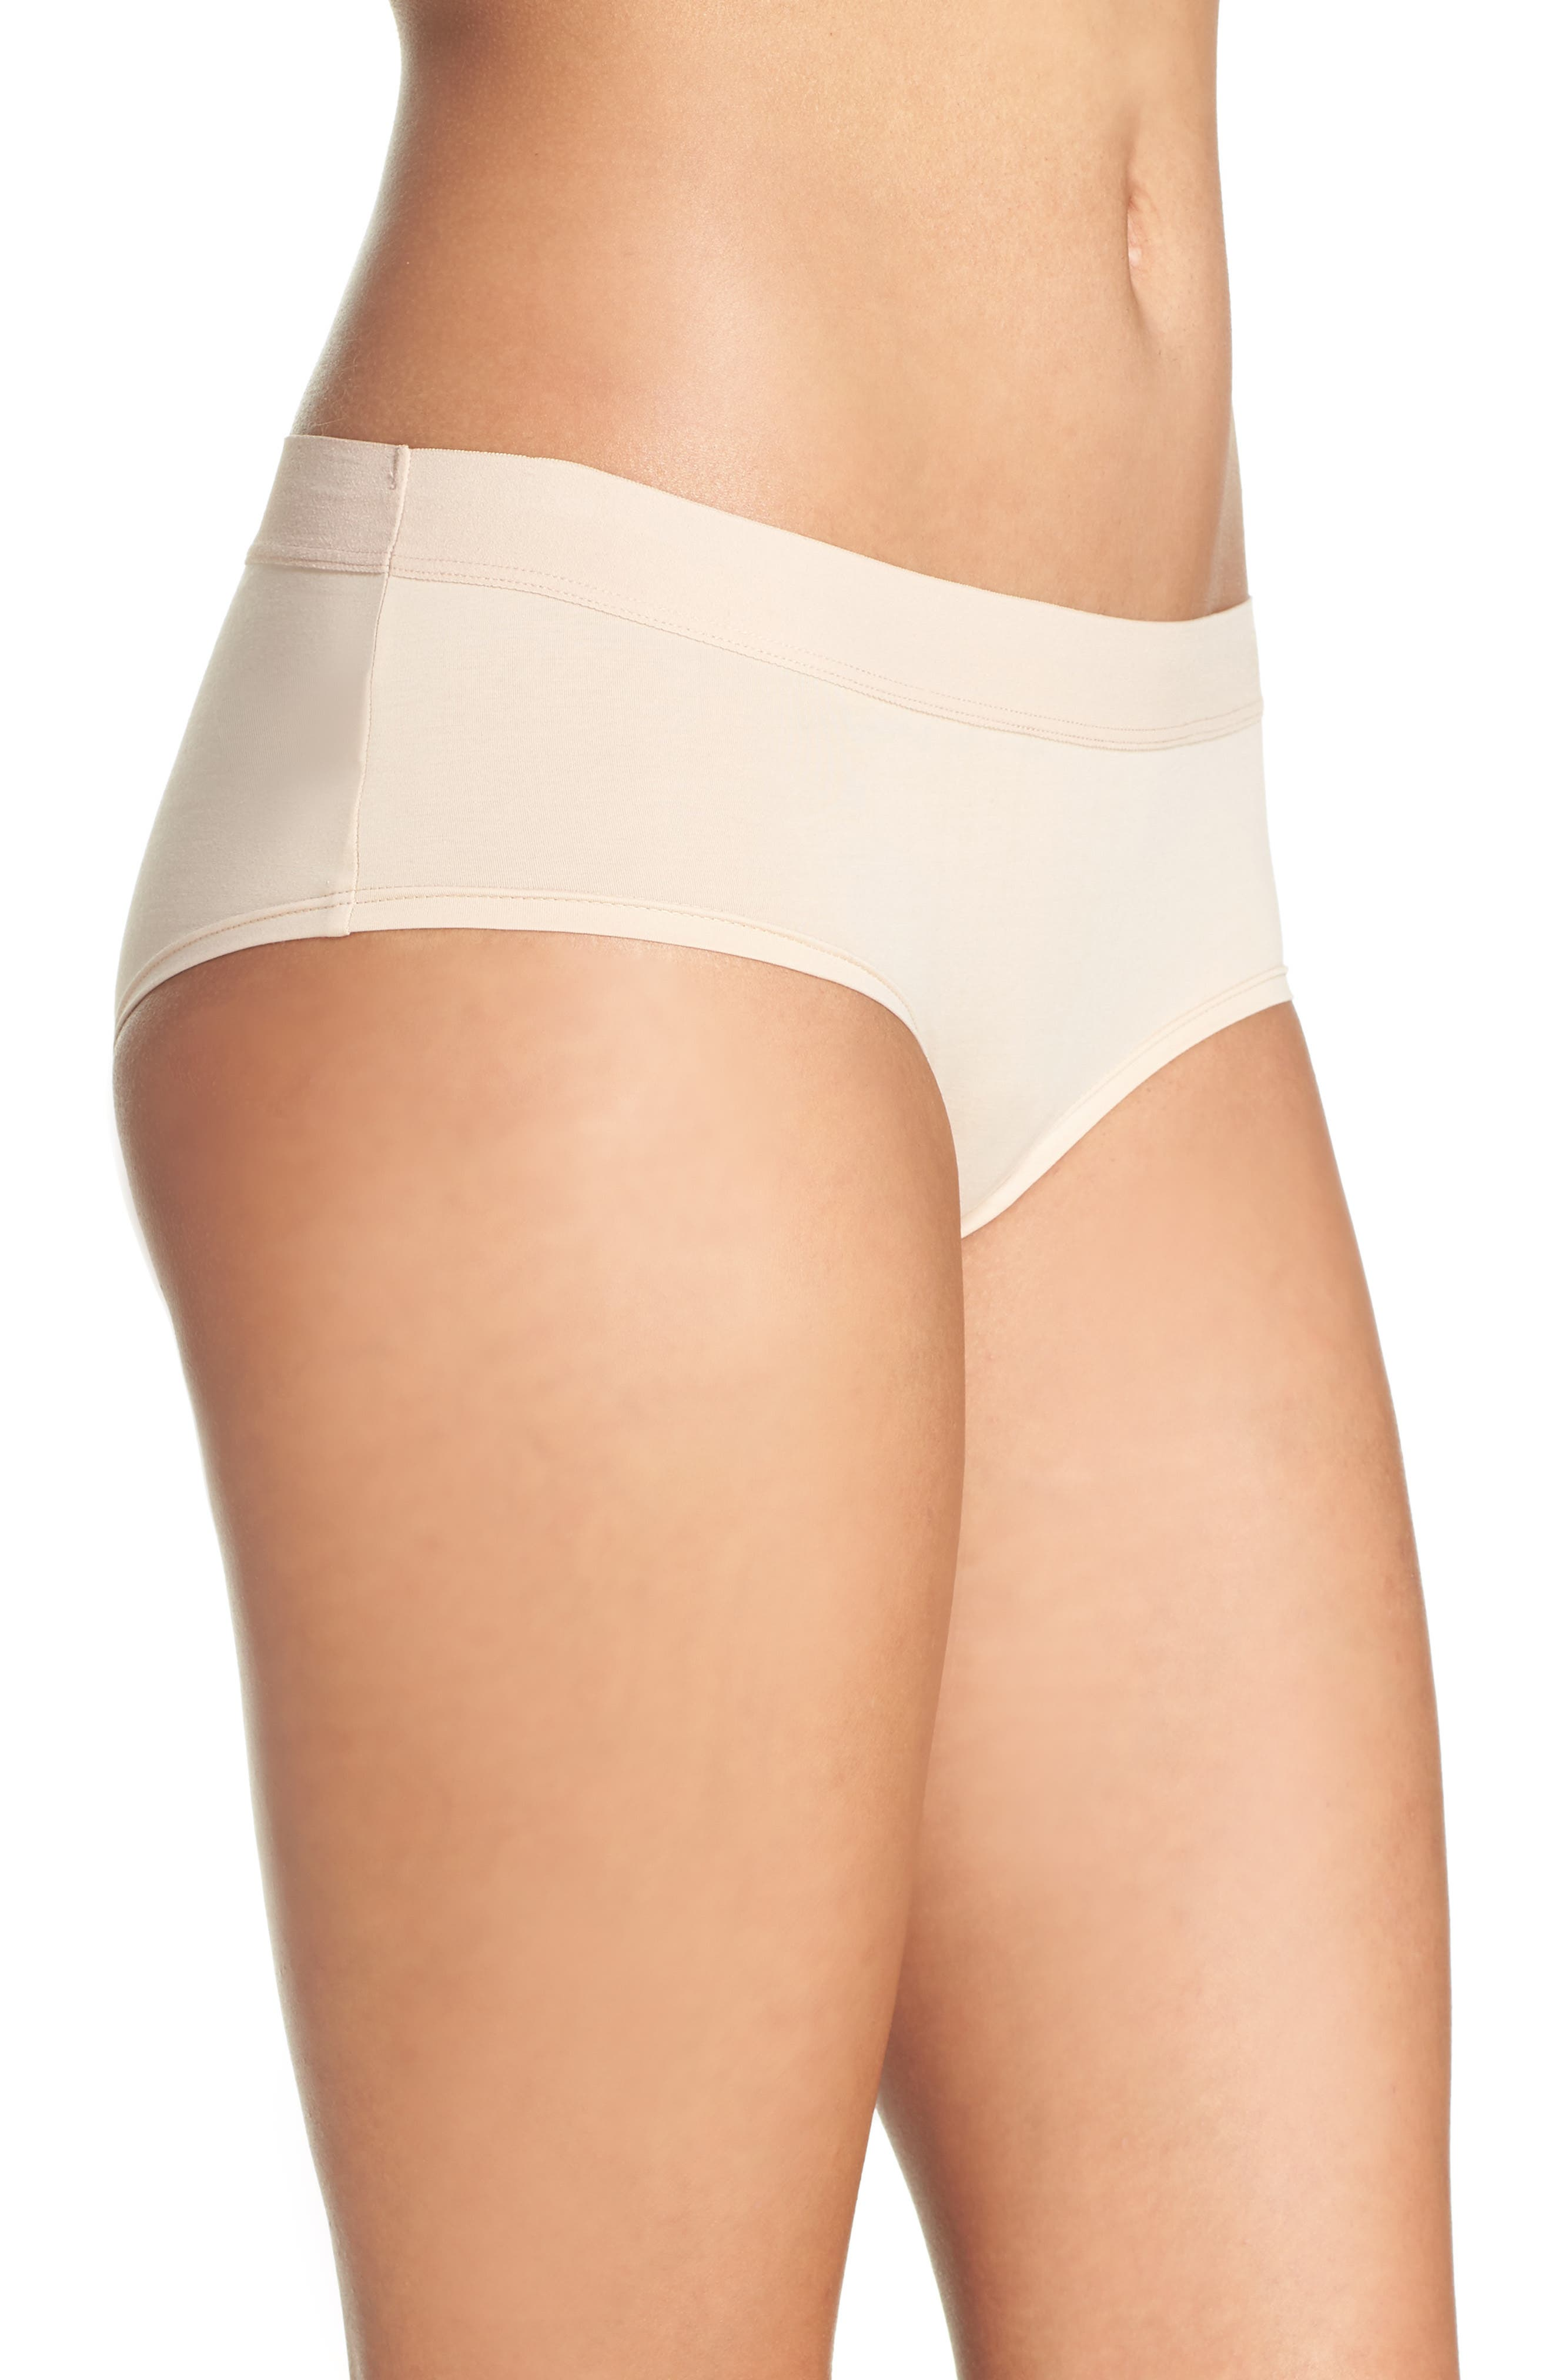 Alternate Image 3  - DKNY Hipster Panties (3 for $33)